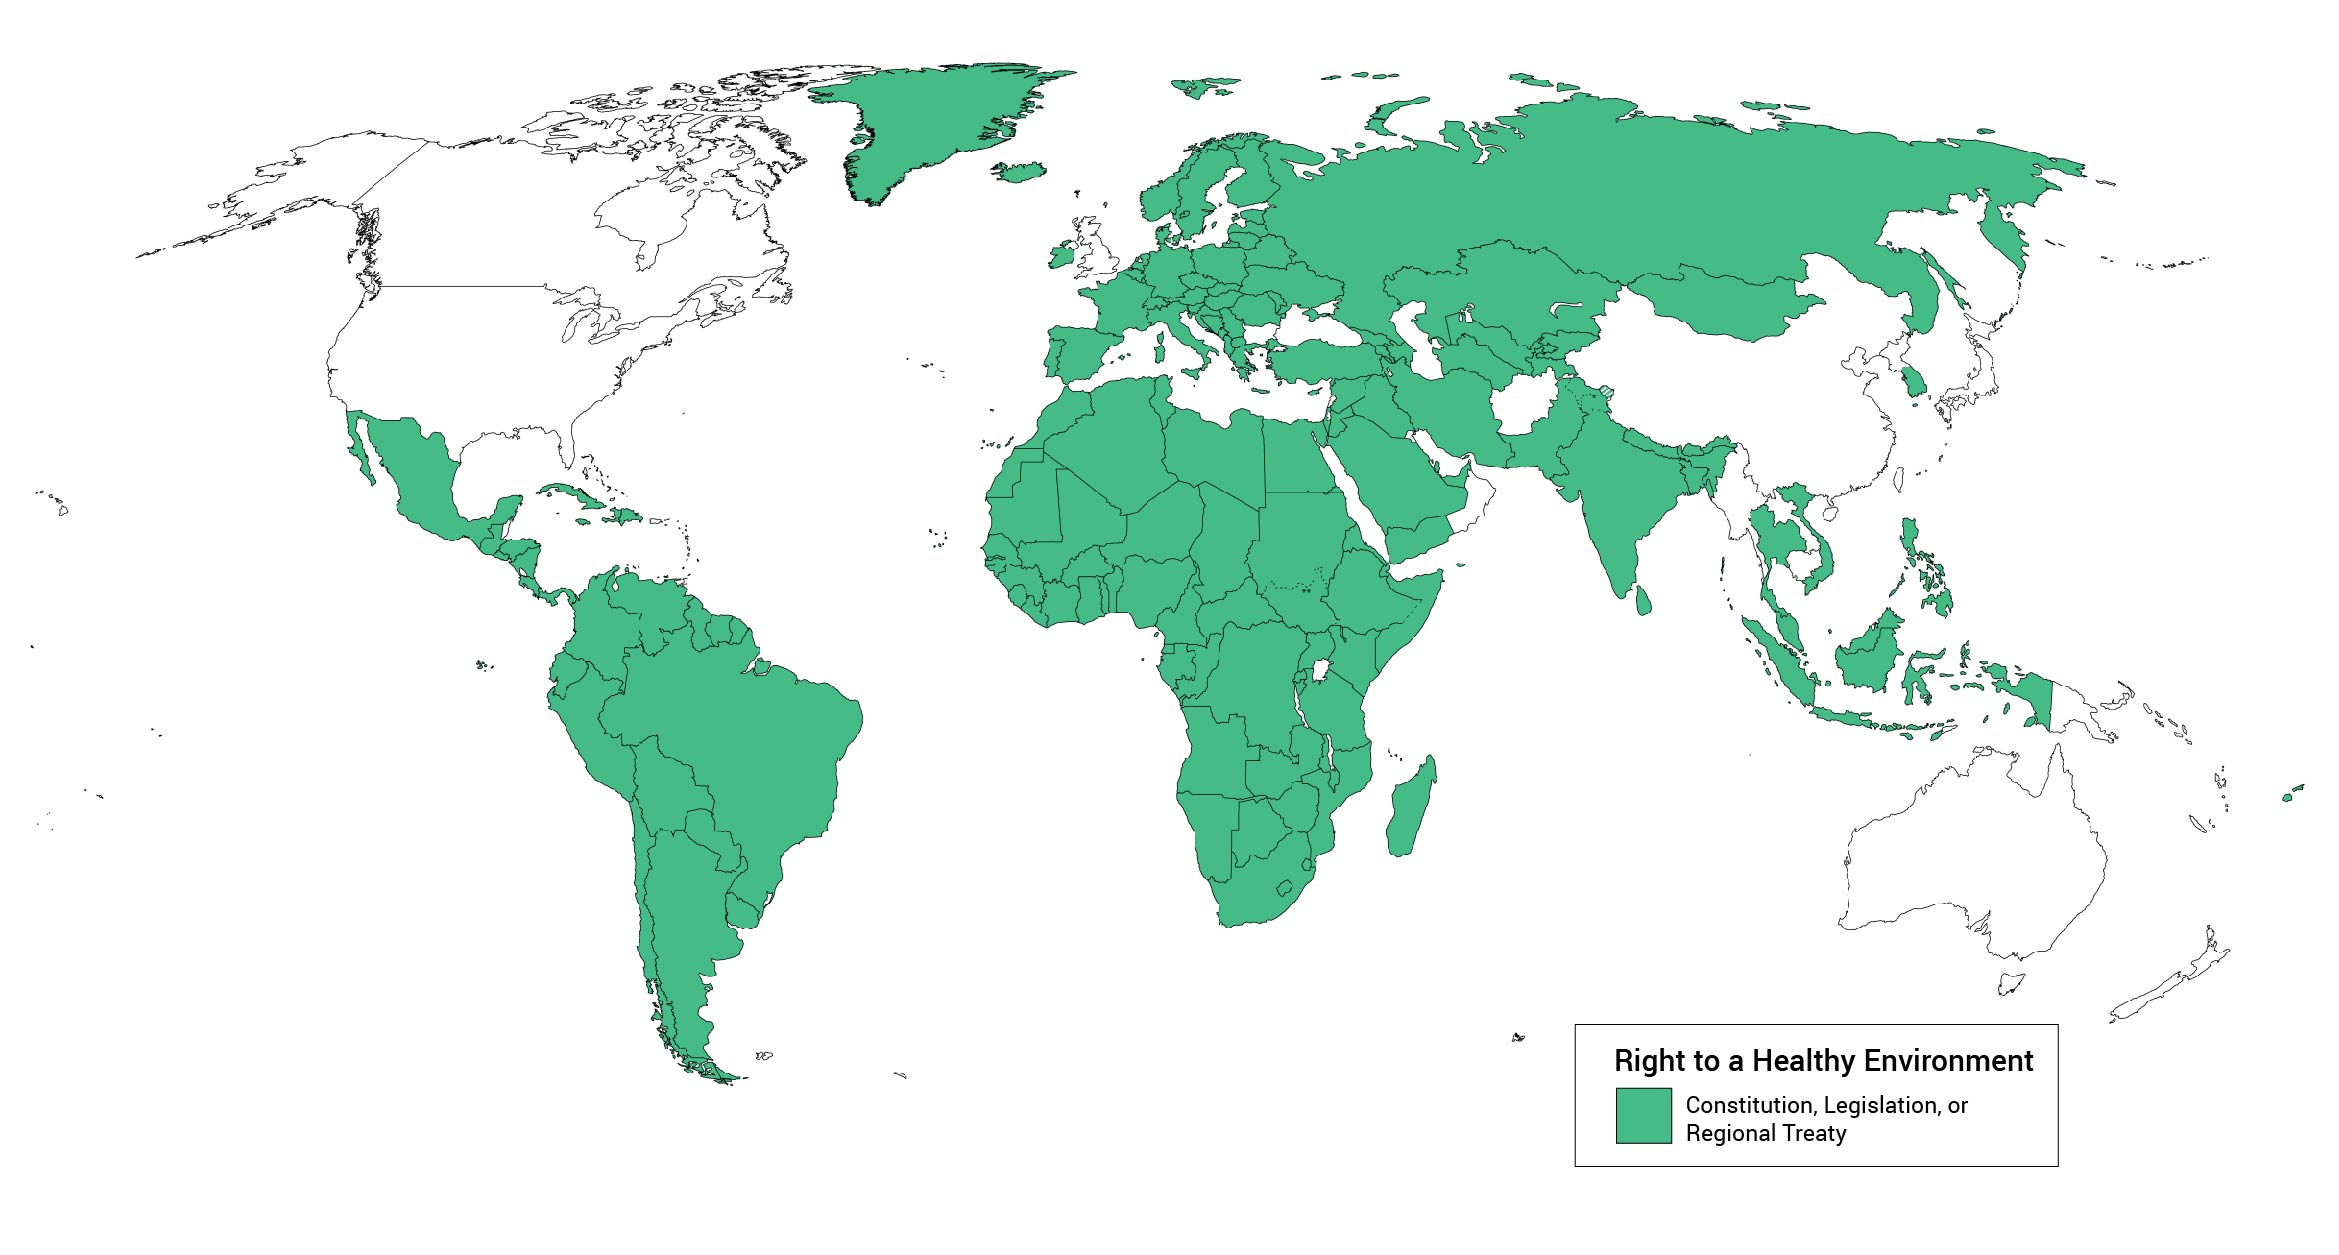 map that shows countries that have regulations for right to healthy environment created by Nawon Song